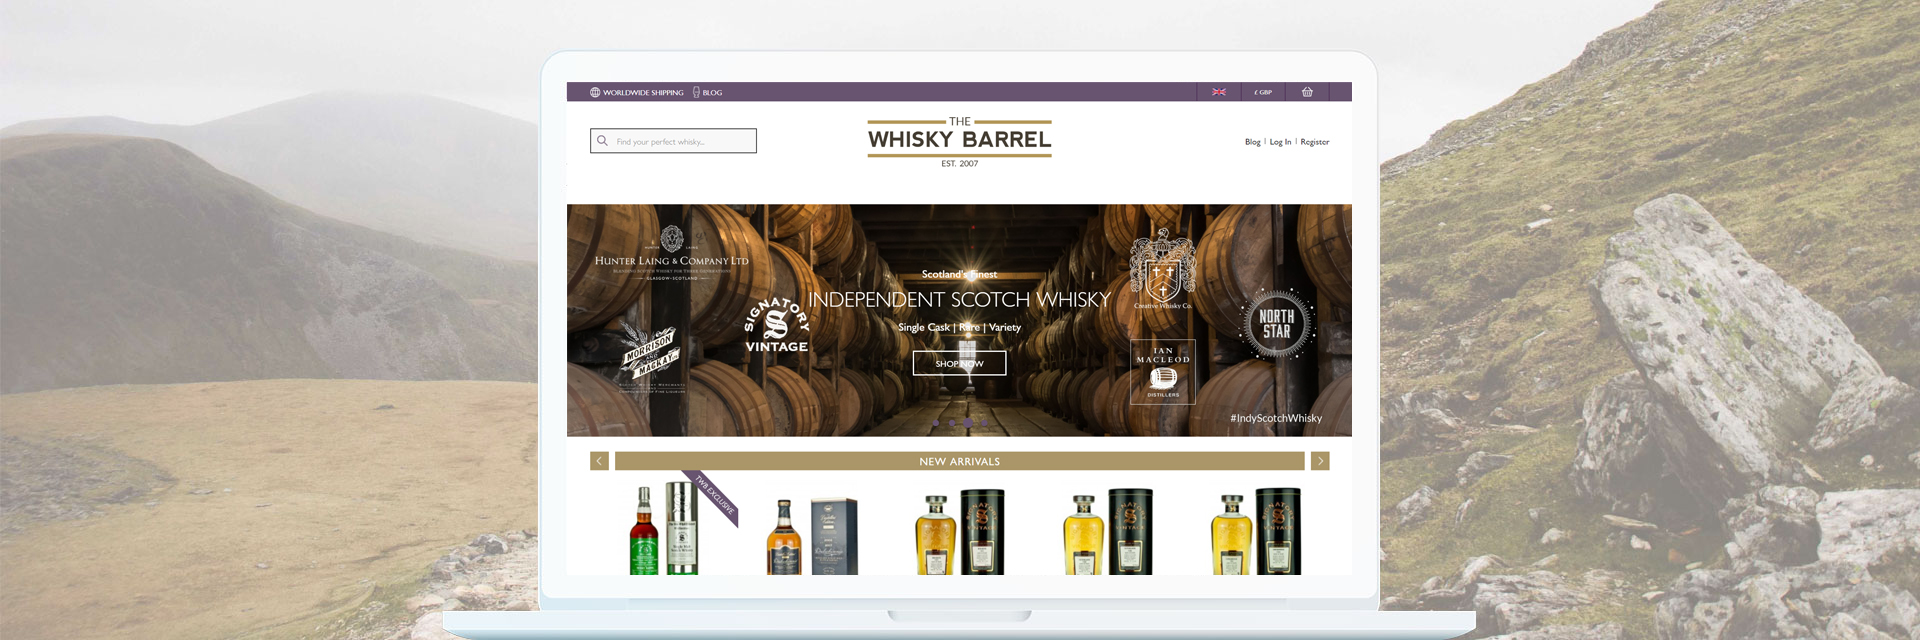 The Whisky Barrel Homepage Design